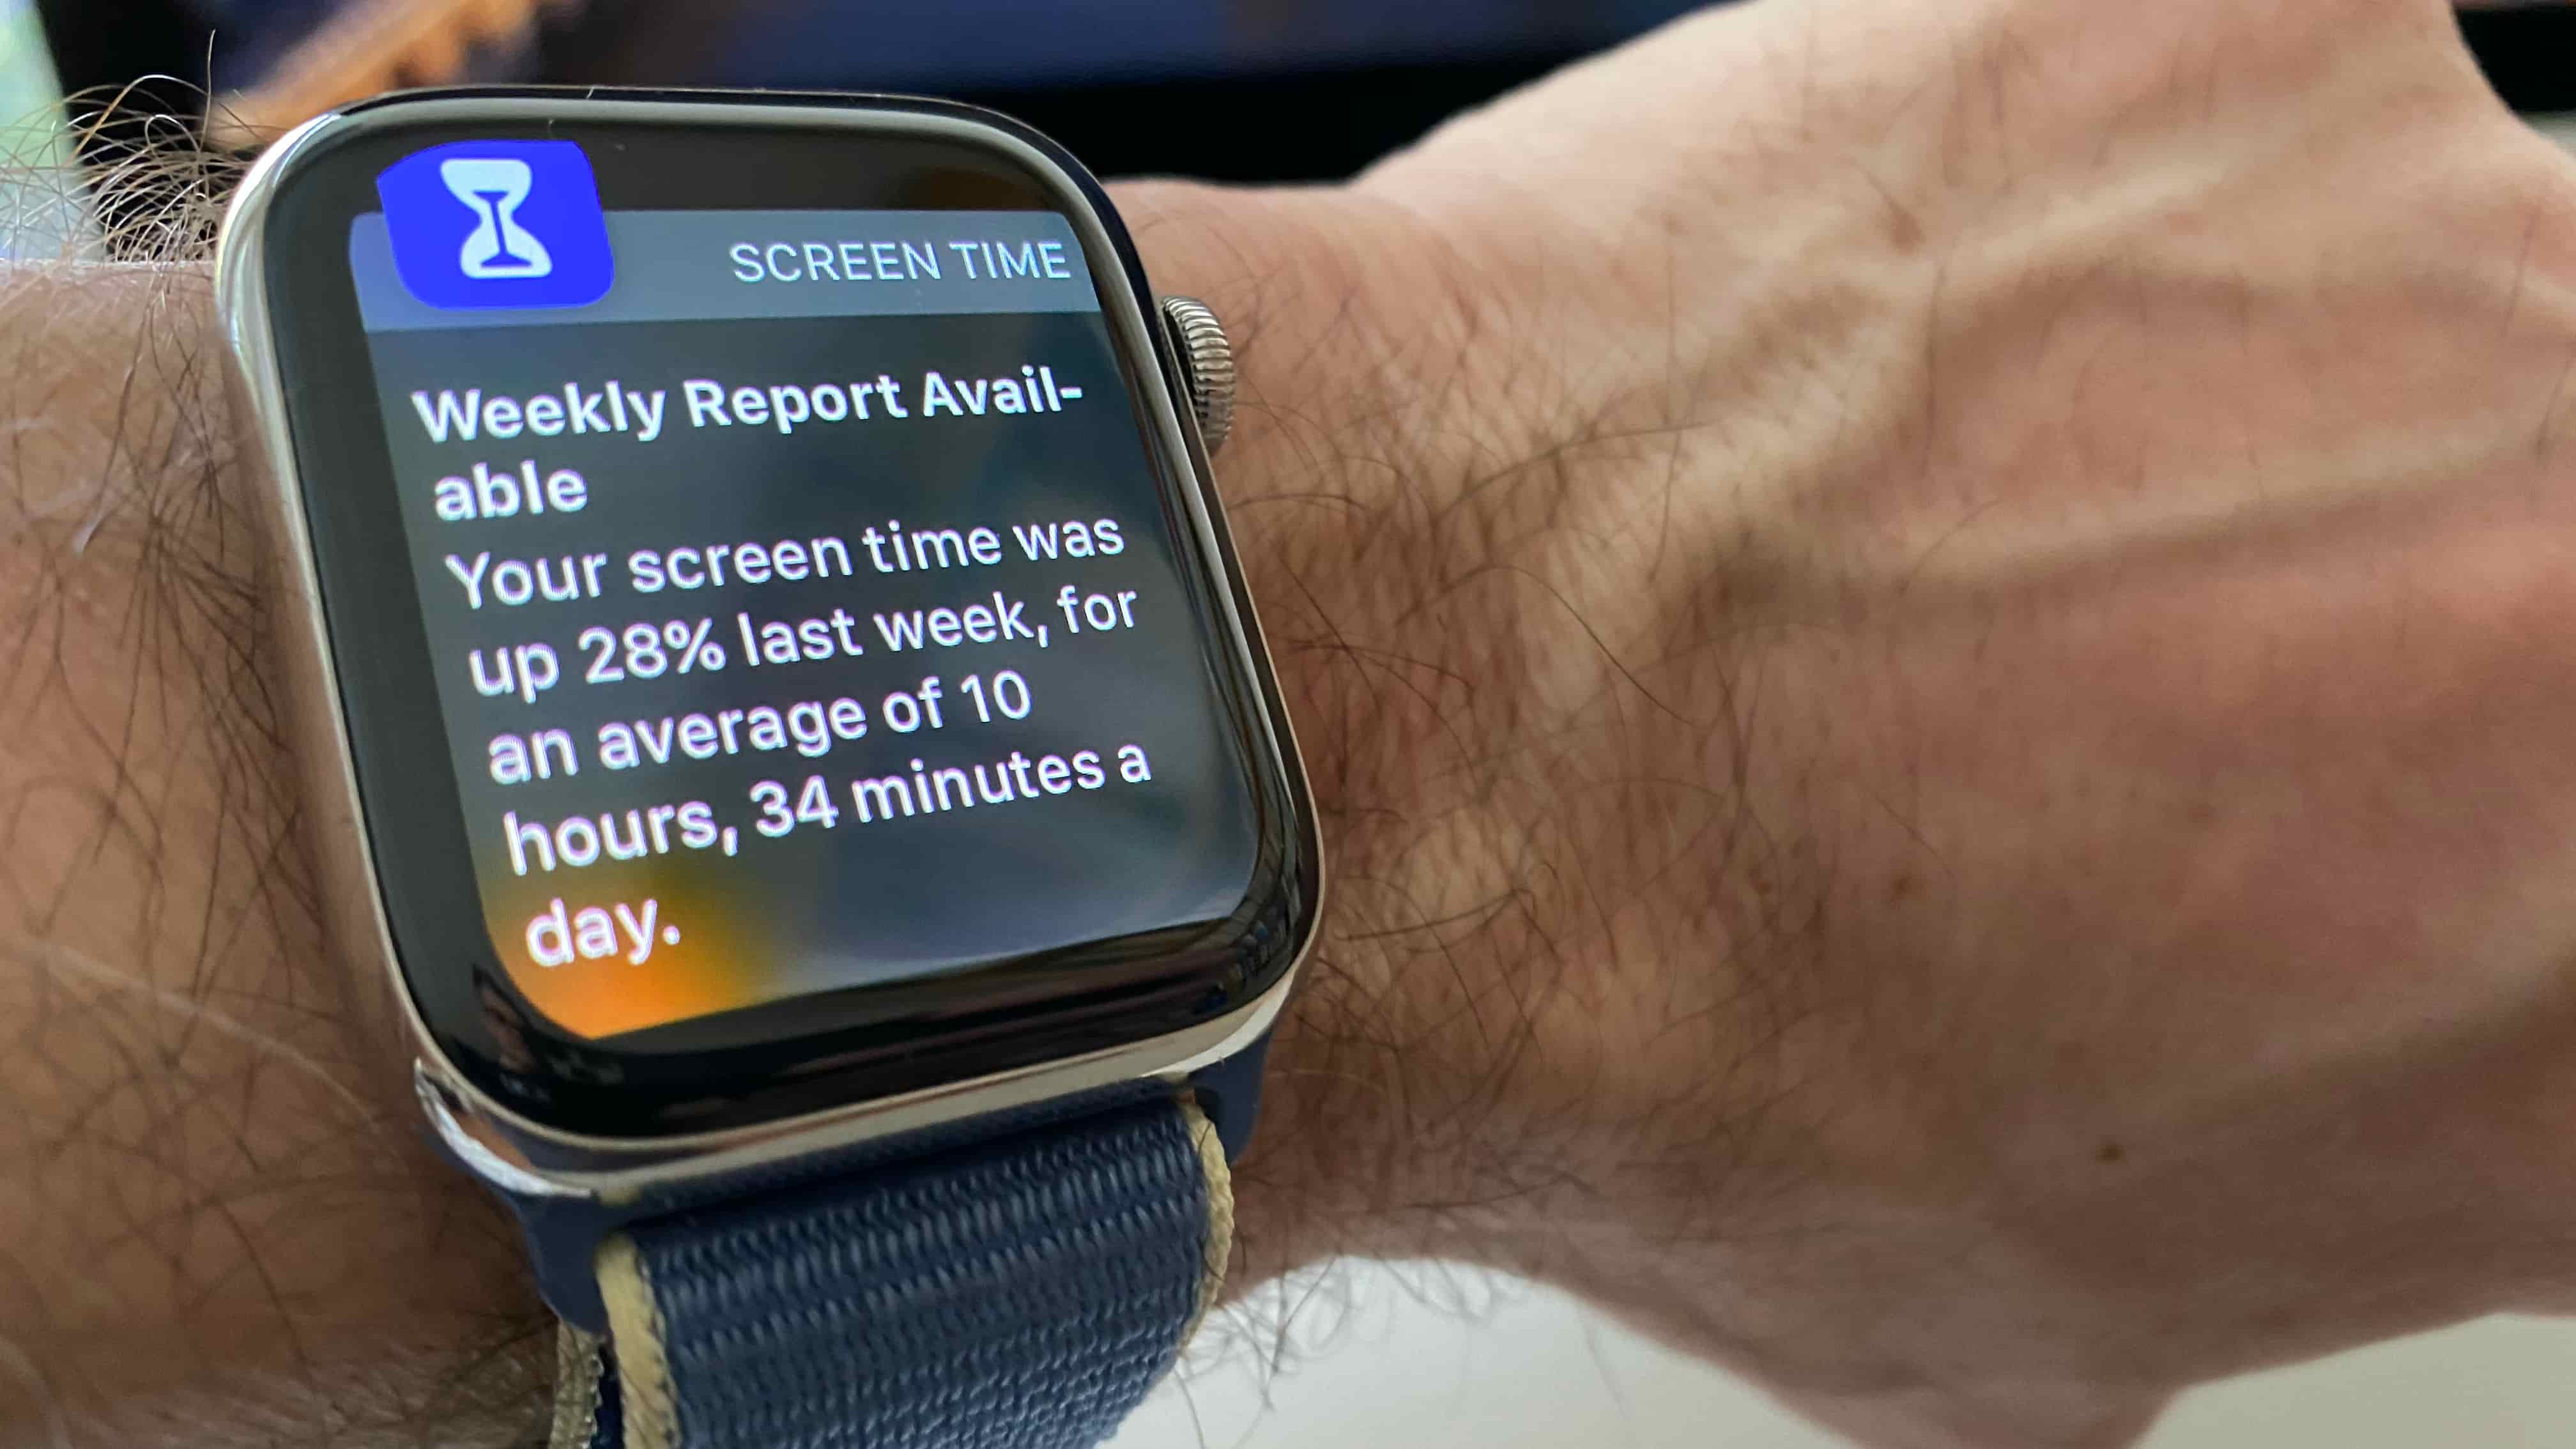 Apple Watch displaying the weekly Screen Time report